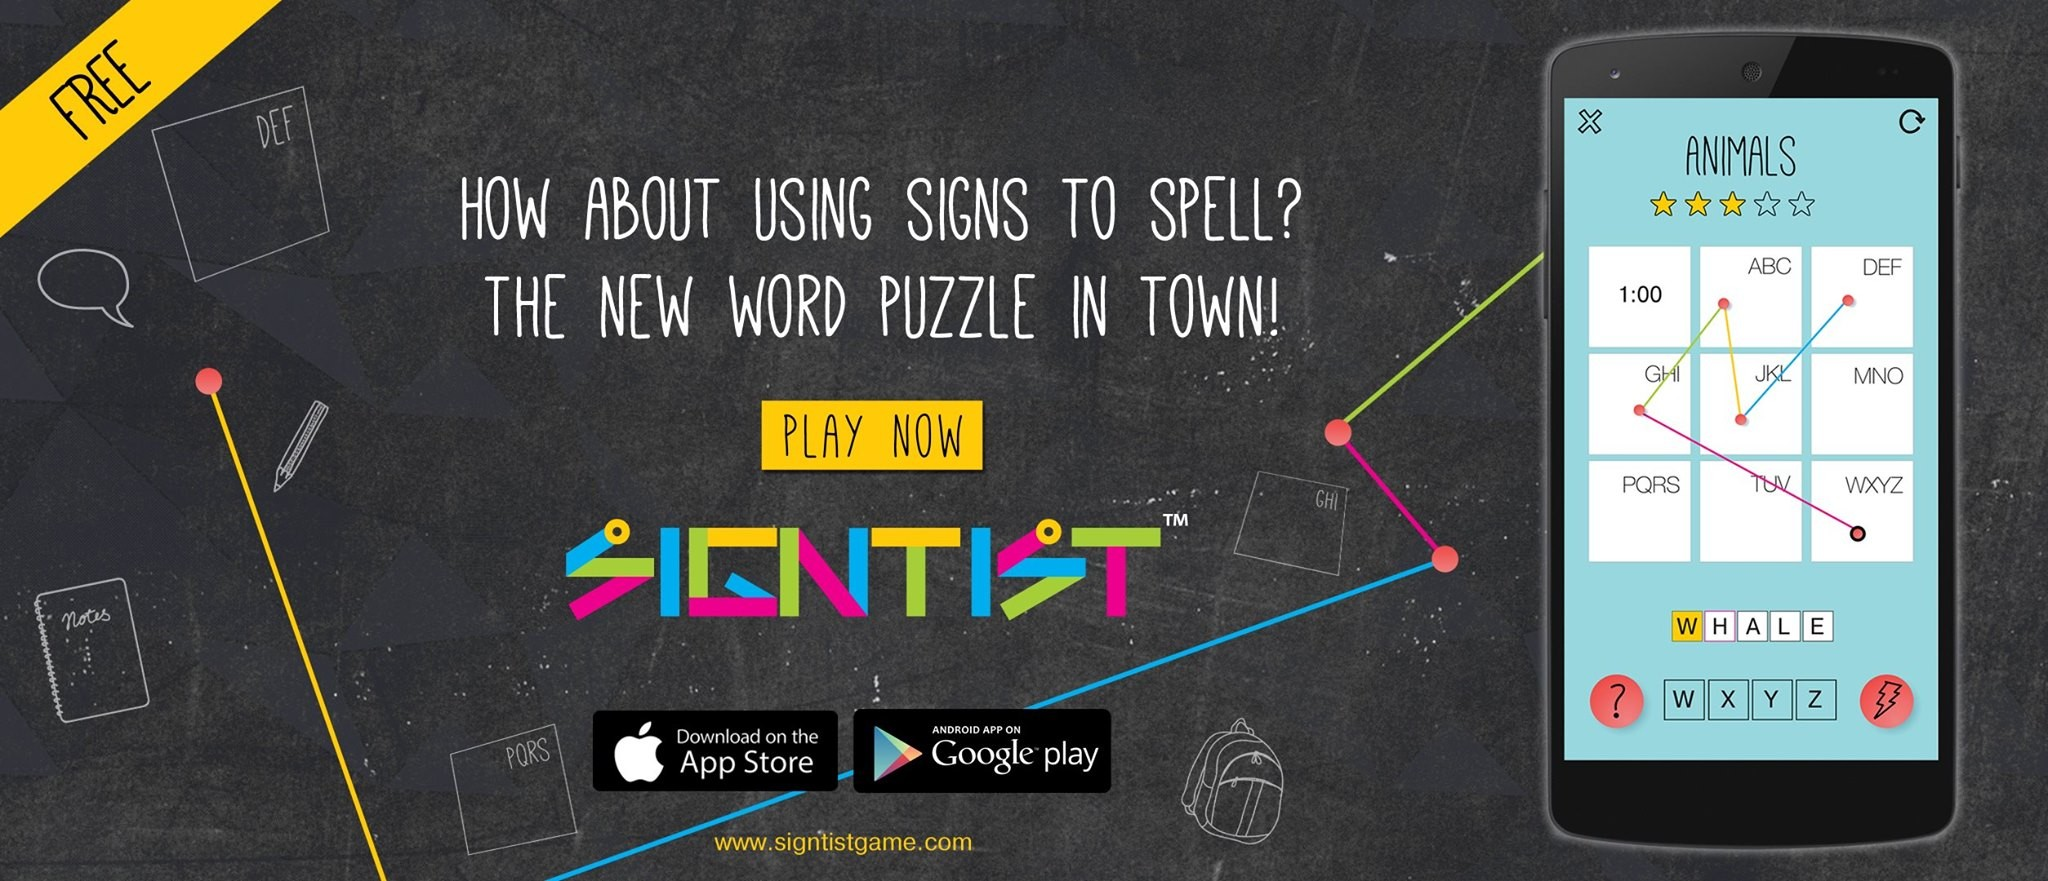 Image Signtist New Word Puzzle Demo